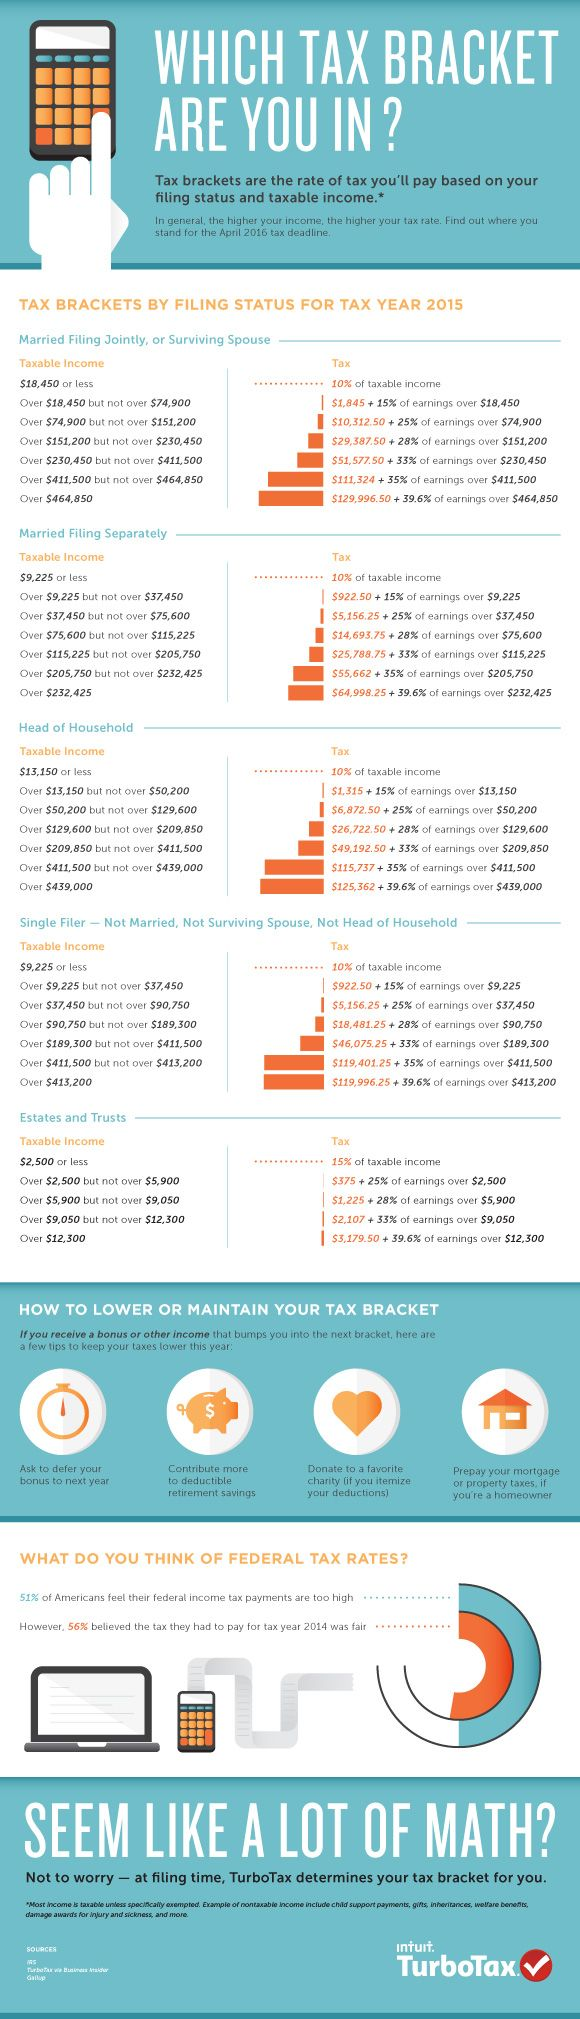 What tax bracket you are insays a lot about your life. But no matter which category you fall into, it is important to know where you stand for the upcoming tax season. This infographic will give…